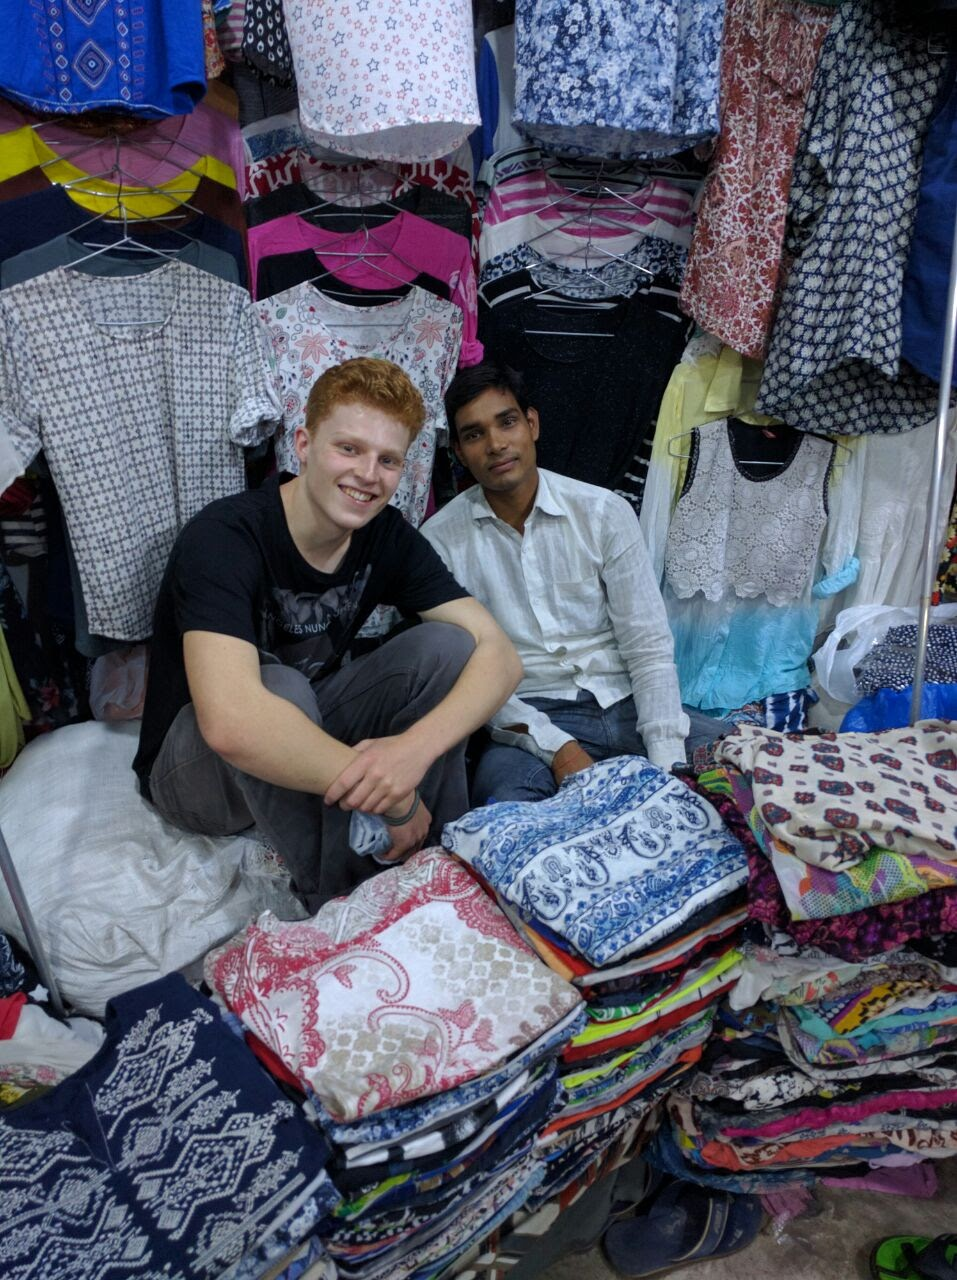 Young guy sits next to a man in the middle of fabric piles and clothes hanging in a store